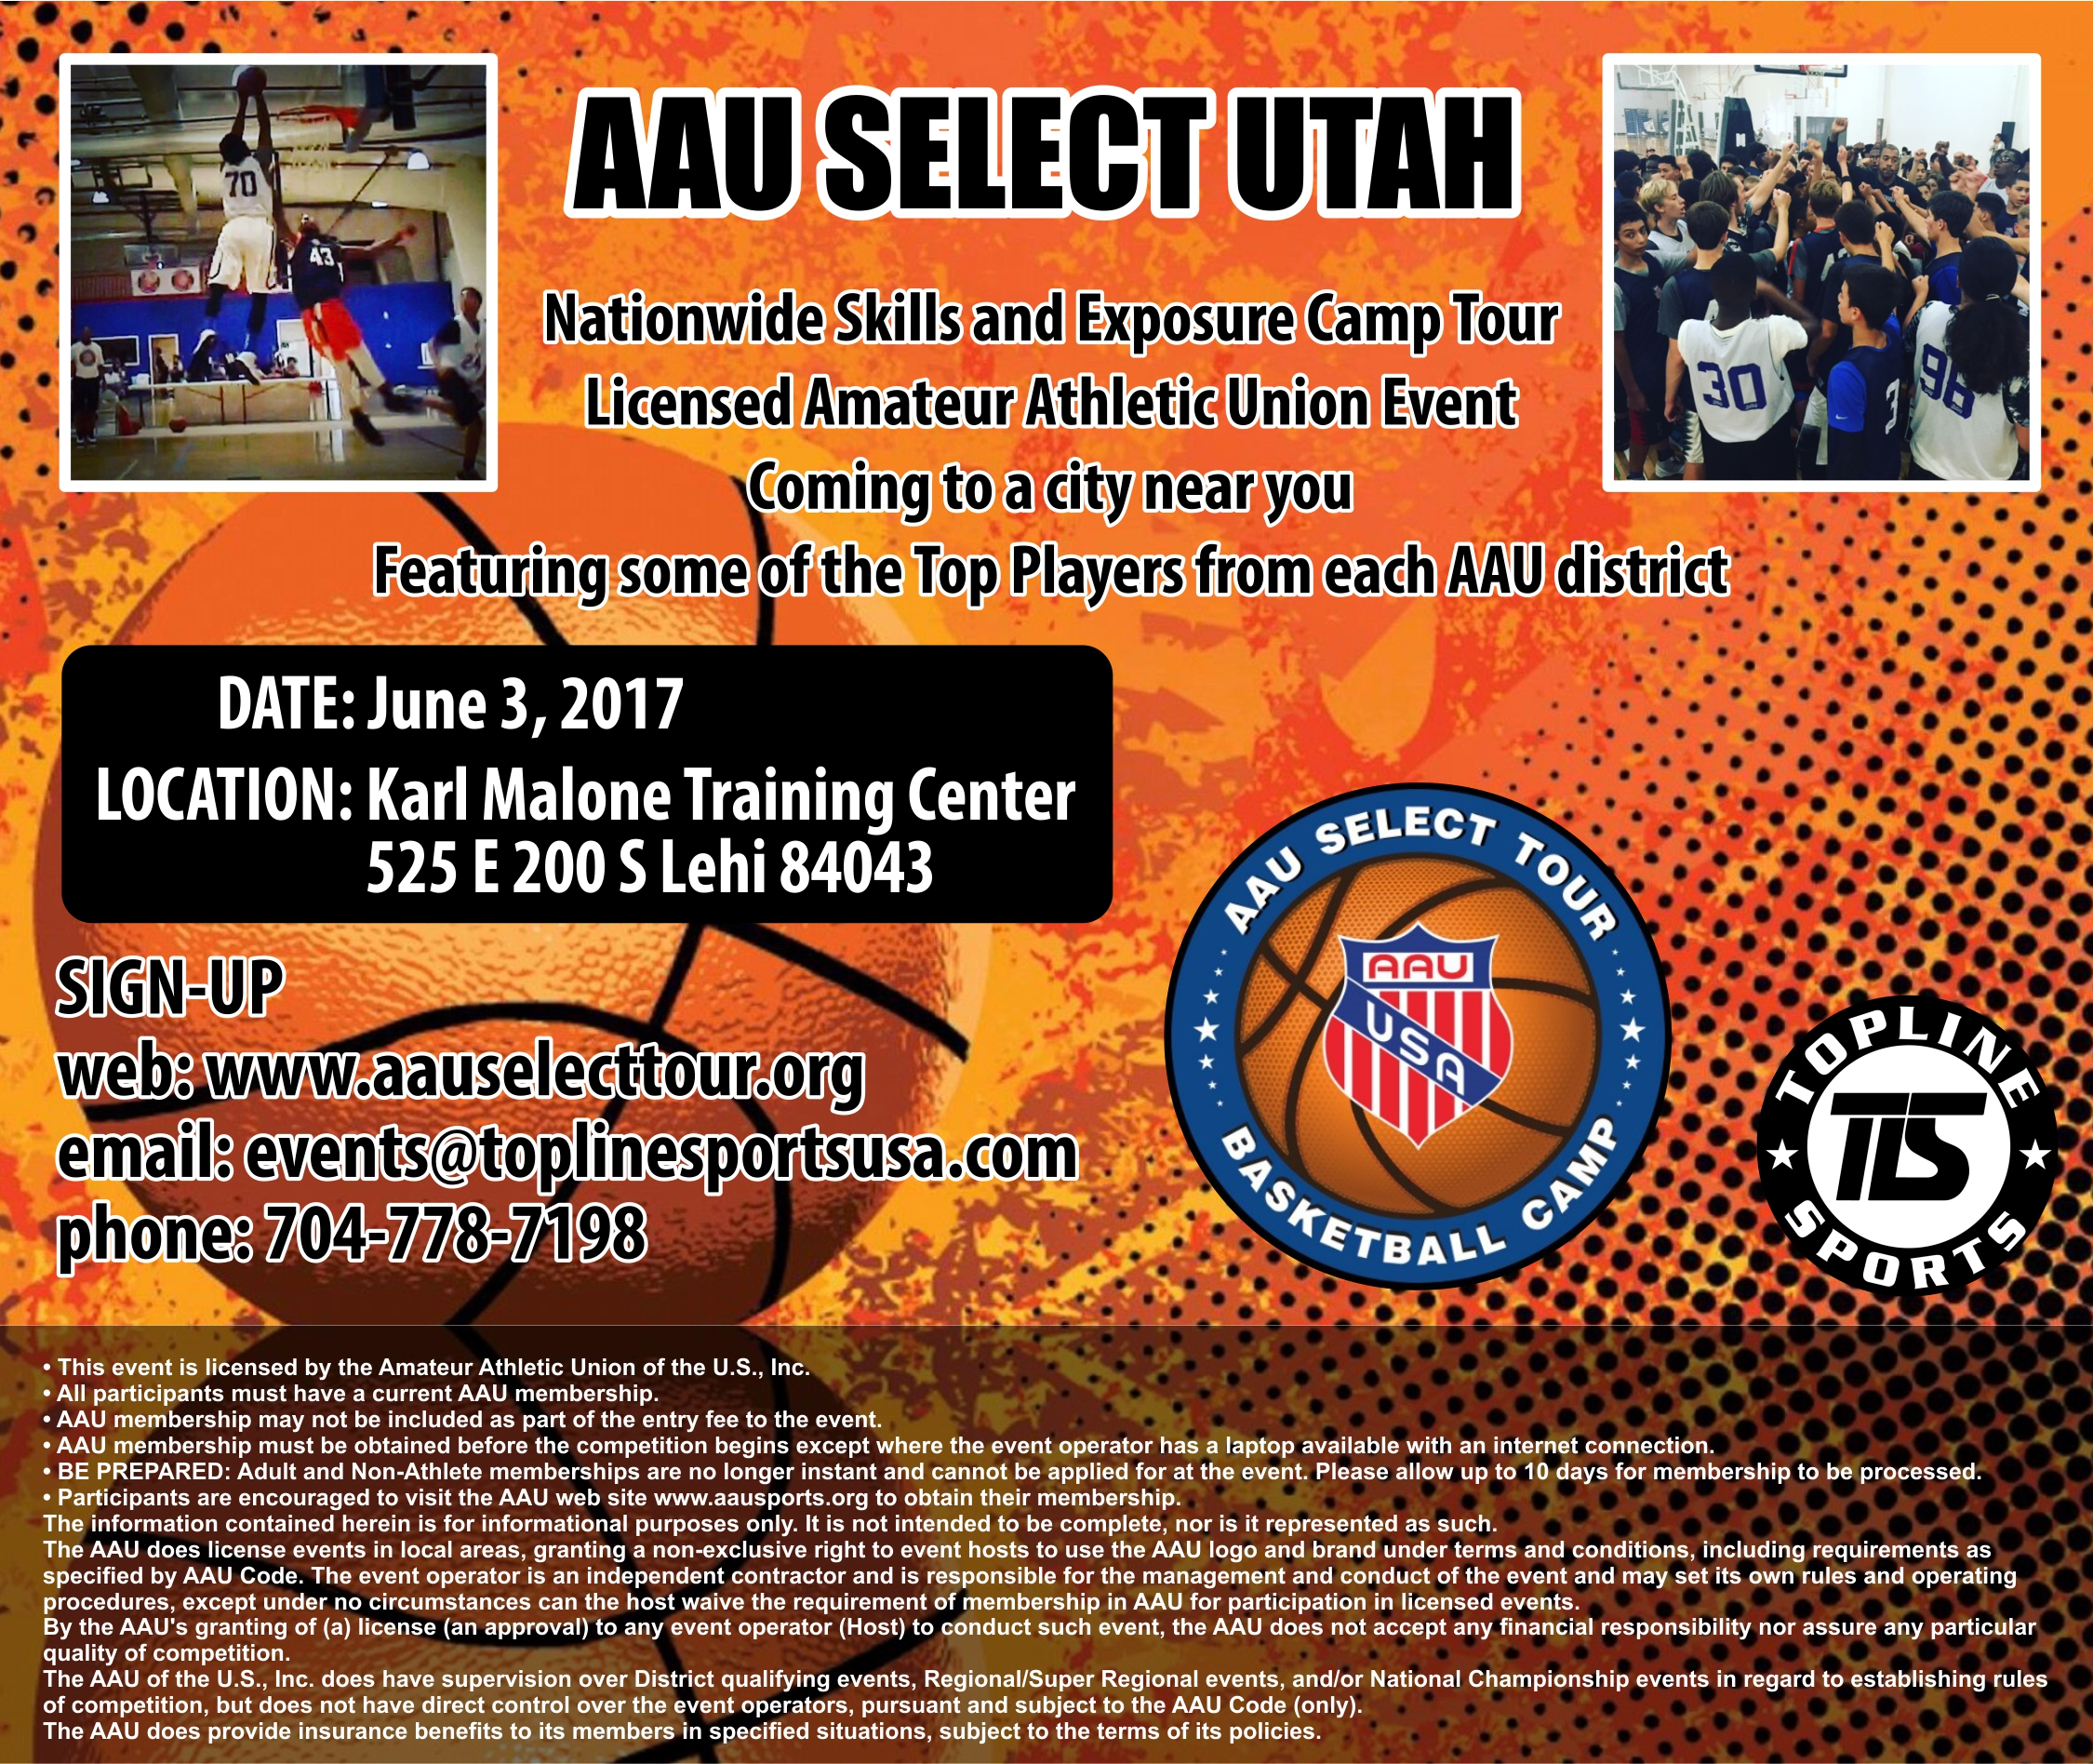 Skills And Exposure Camp Tour Licensed Amateur Athletic Union Event Coming To A City Near You Featuring Some Of The Top Players From Each AAU District